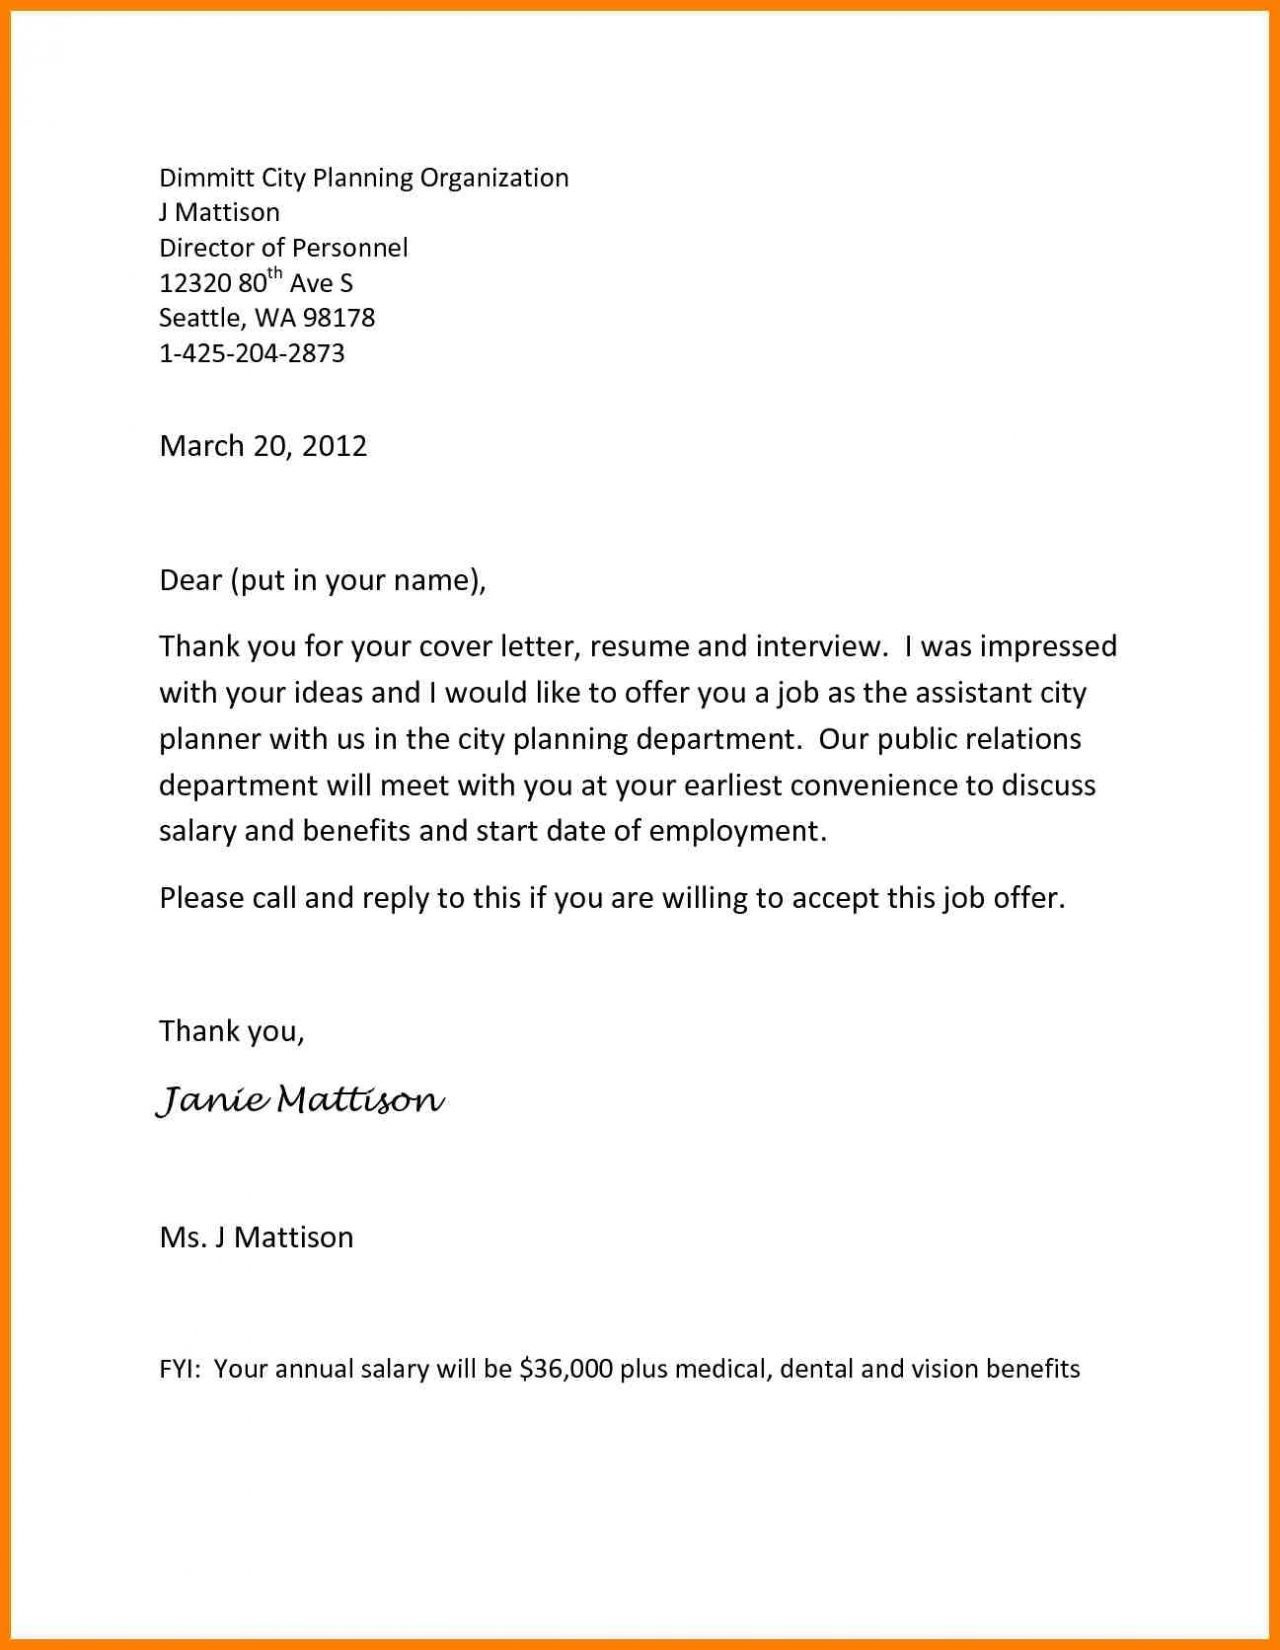 Job Offer Letter Template - Job Fer Letter Template Beautiful Job Fer Letter Template Us Copy